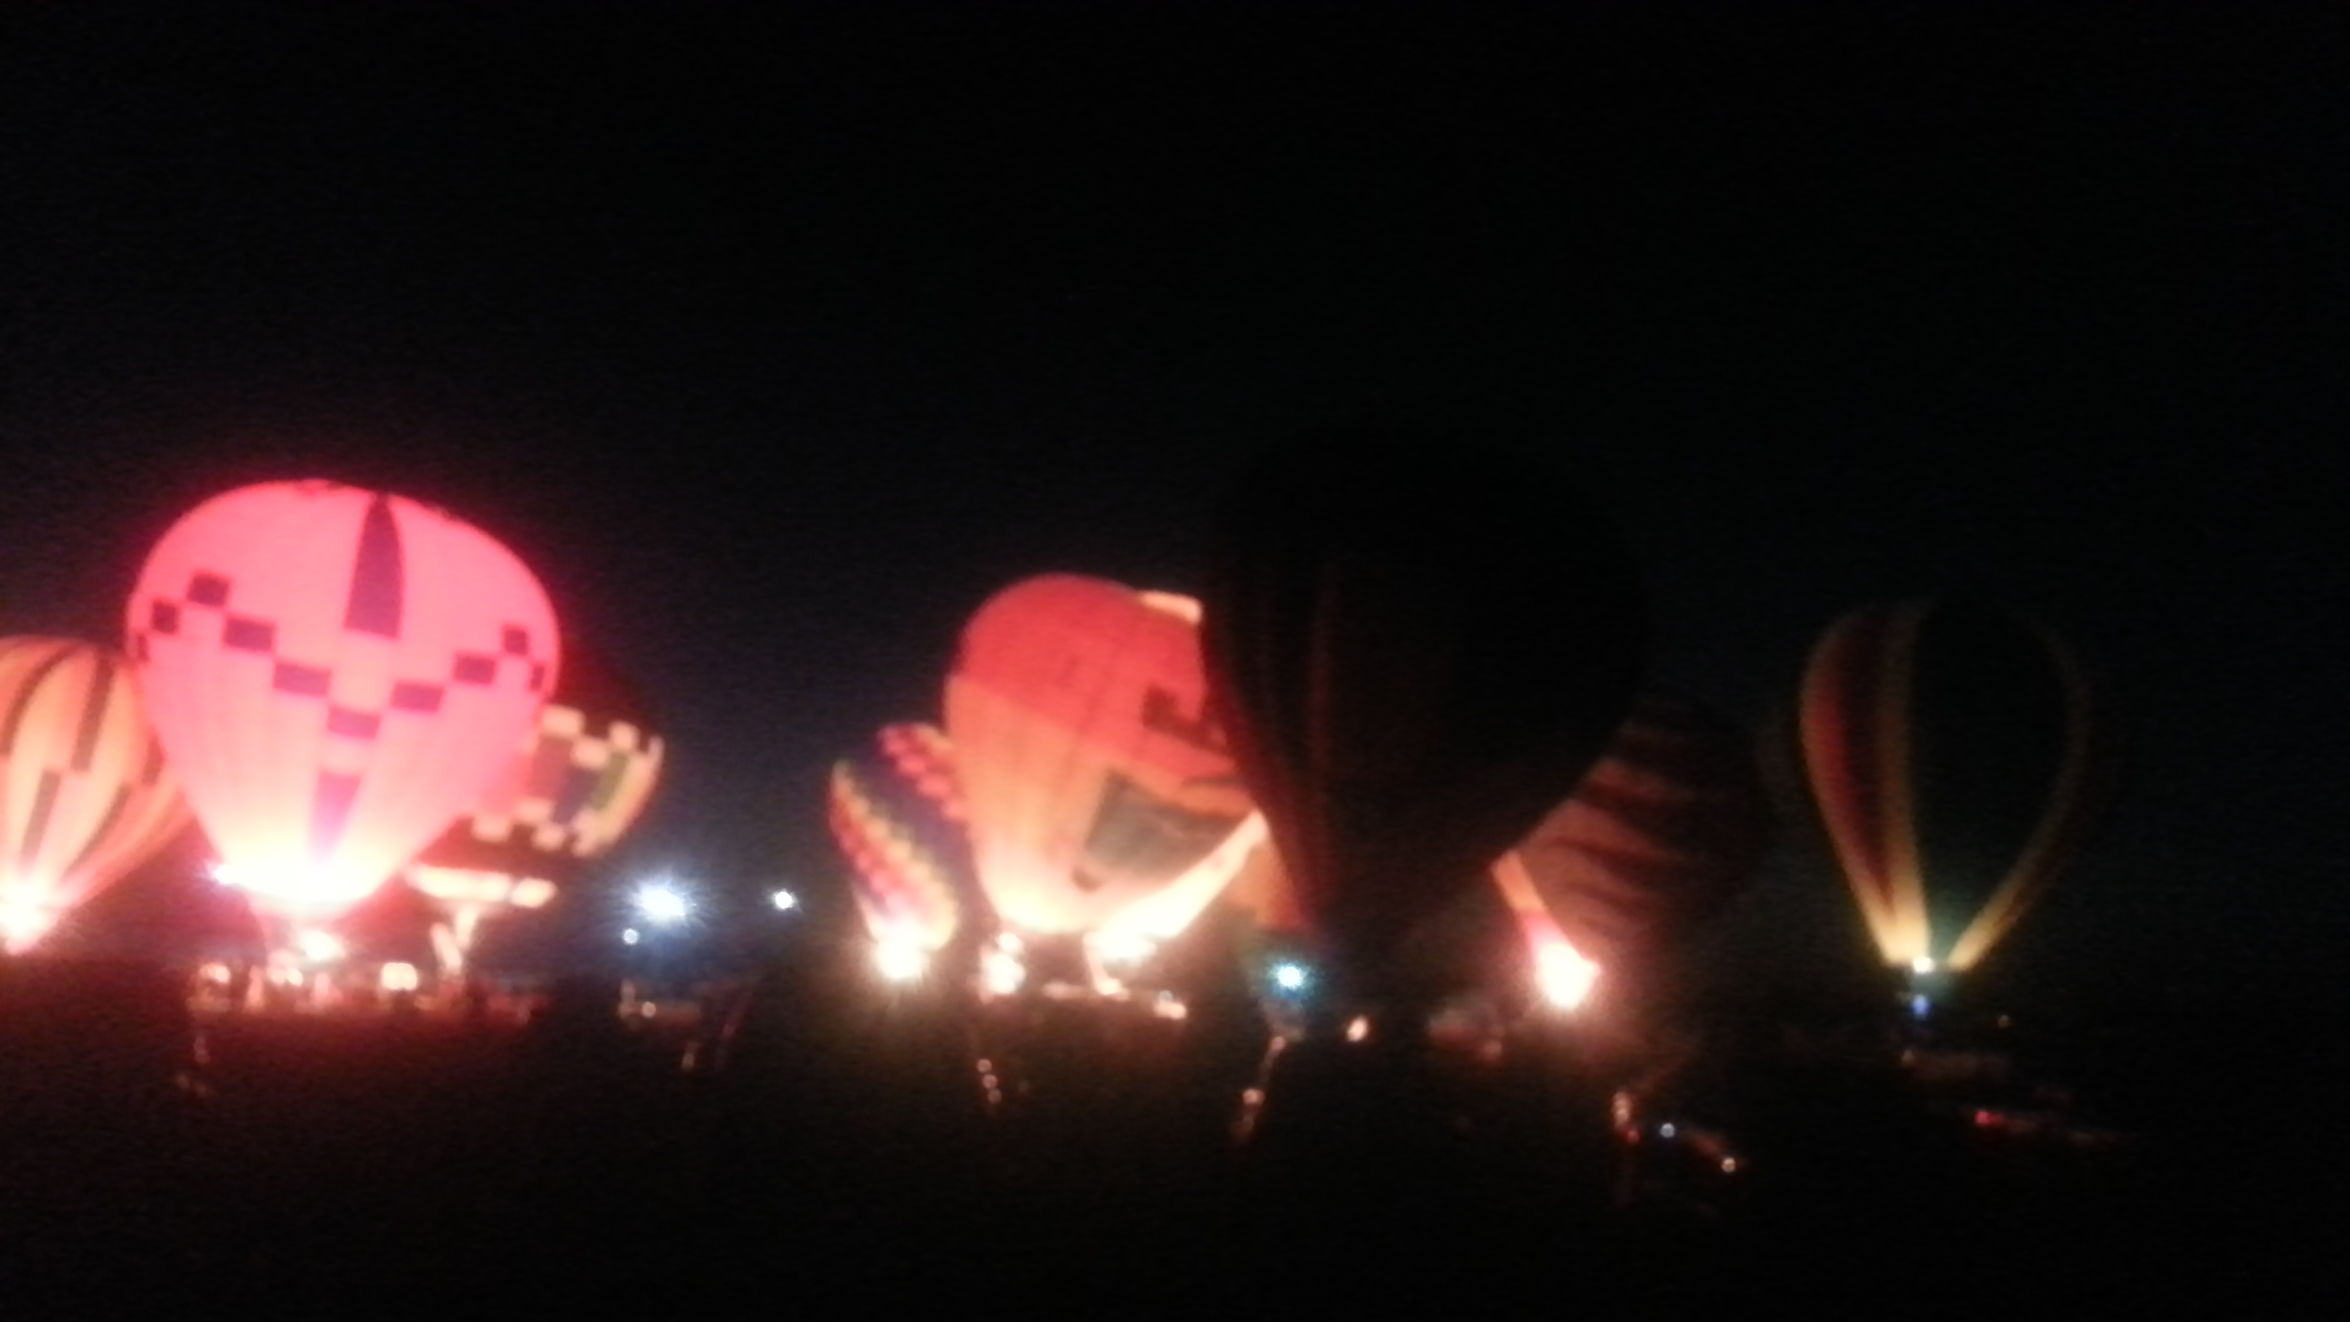 And 1 more Anna Balloon Glow Hot Air Balloons Available Light Taking Photos